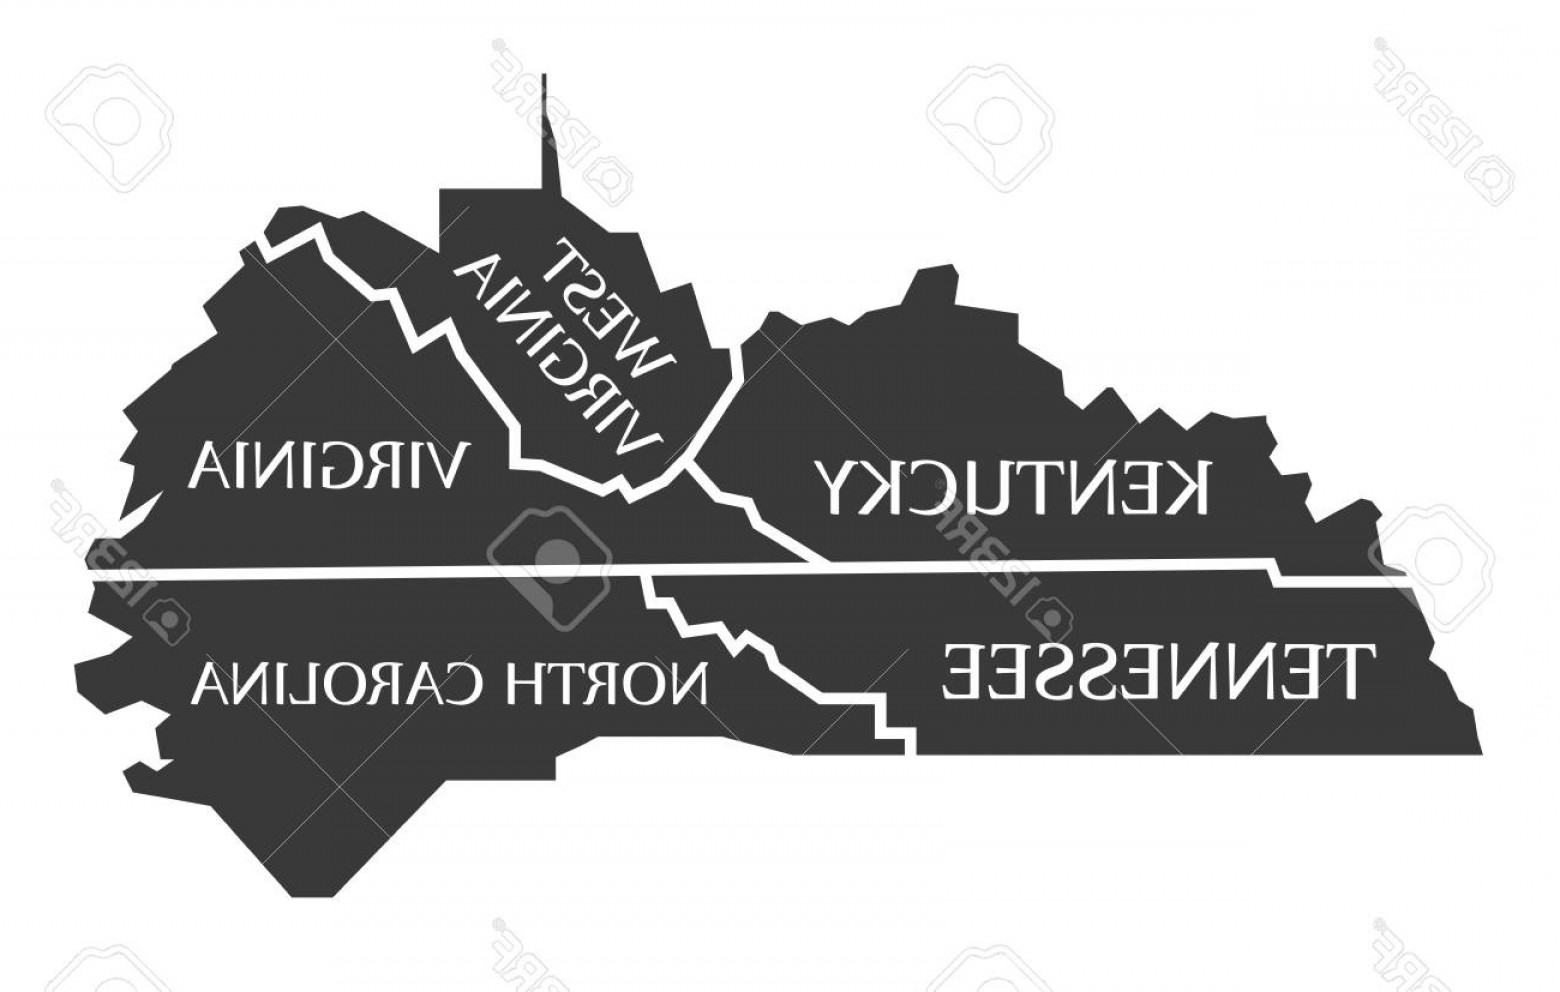 West Virginia Logo Vector: Photostock Vector Kentucky Tennessee West Virginia Virginia North Carolina Map Labelled Black Illustration